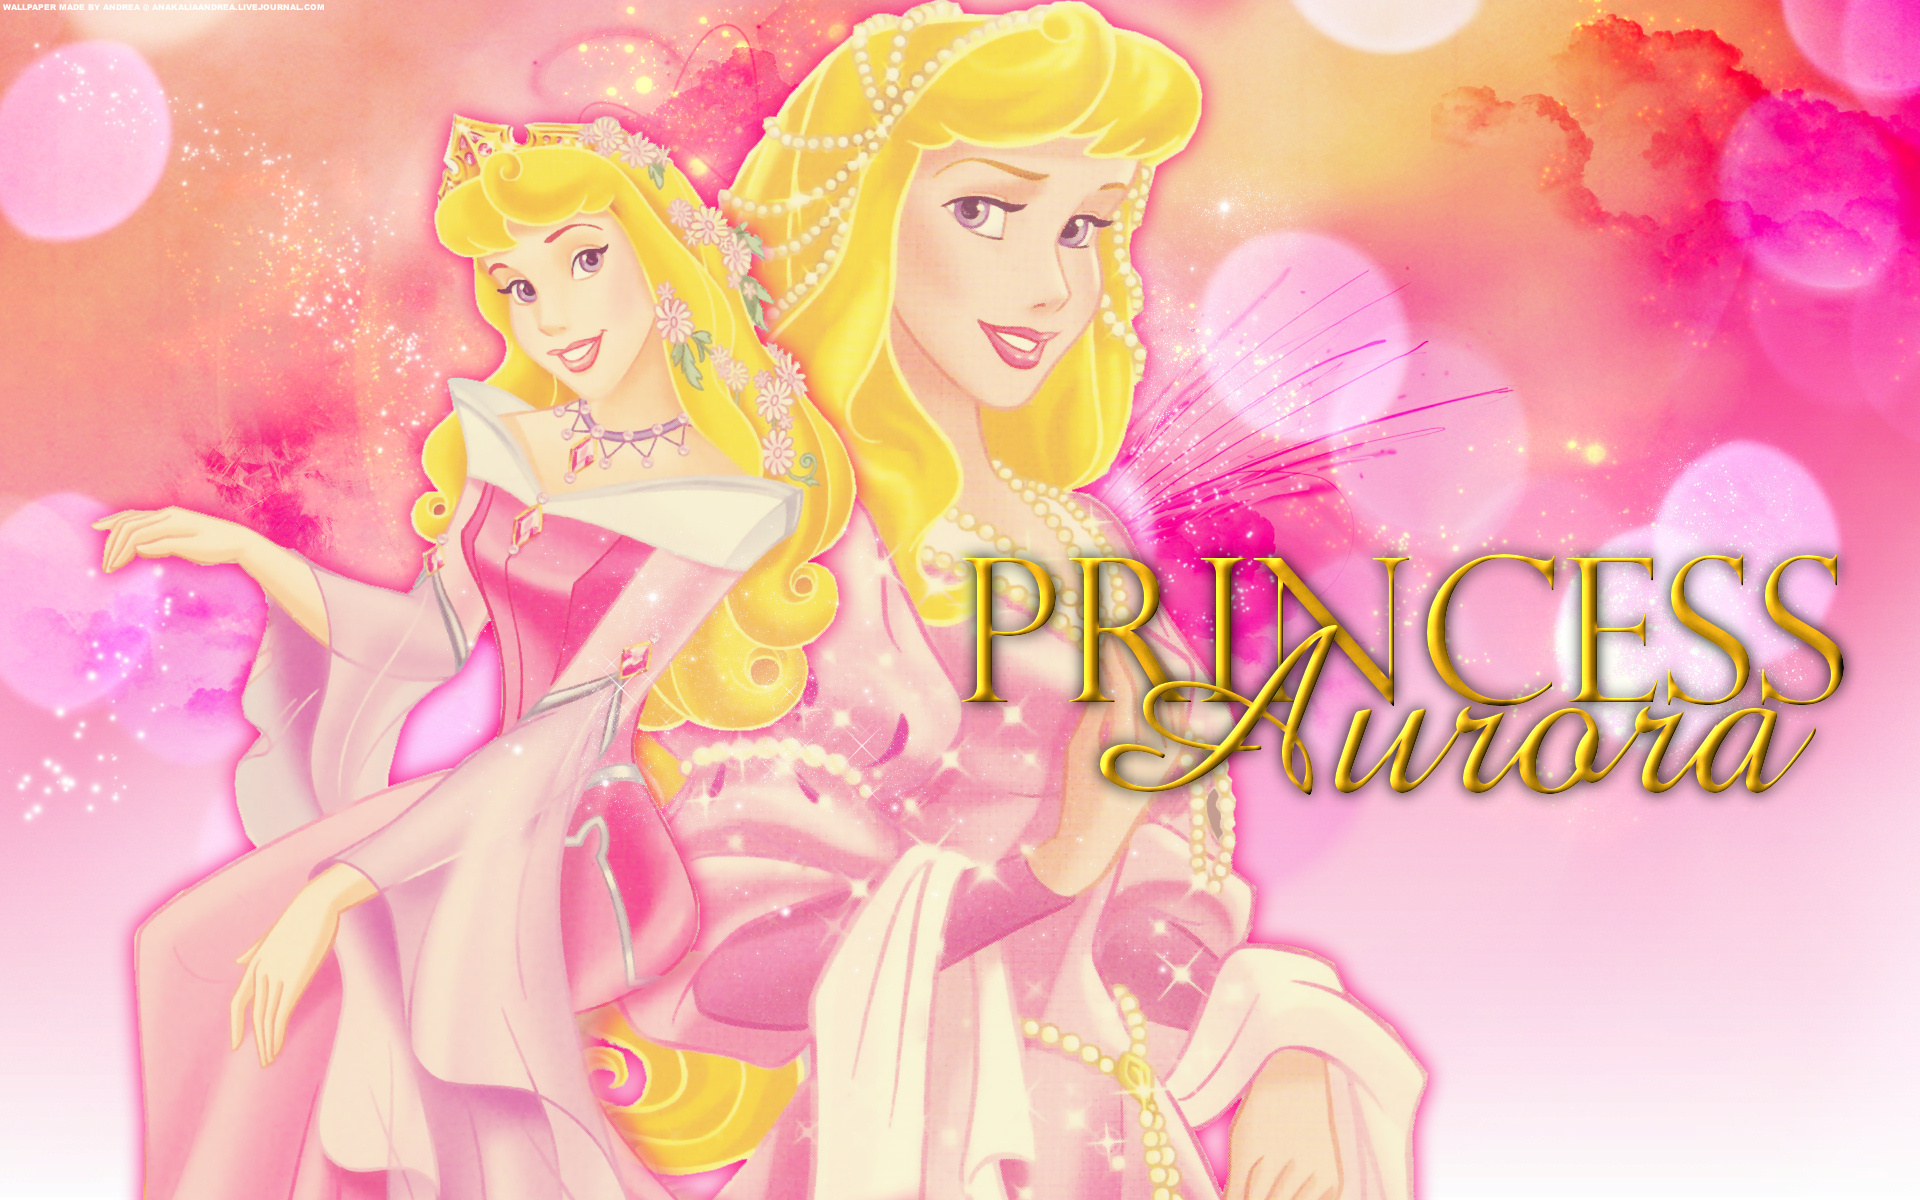 pretty prinsess aurora